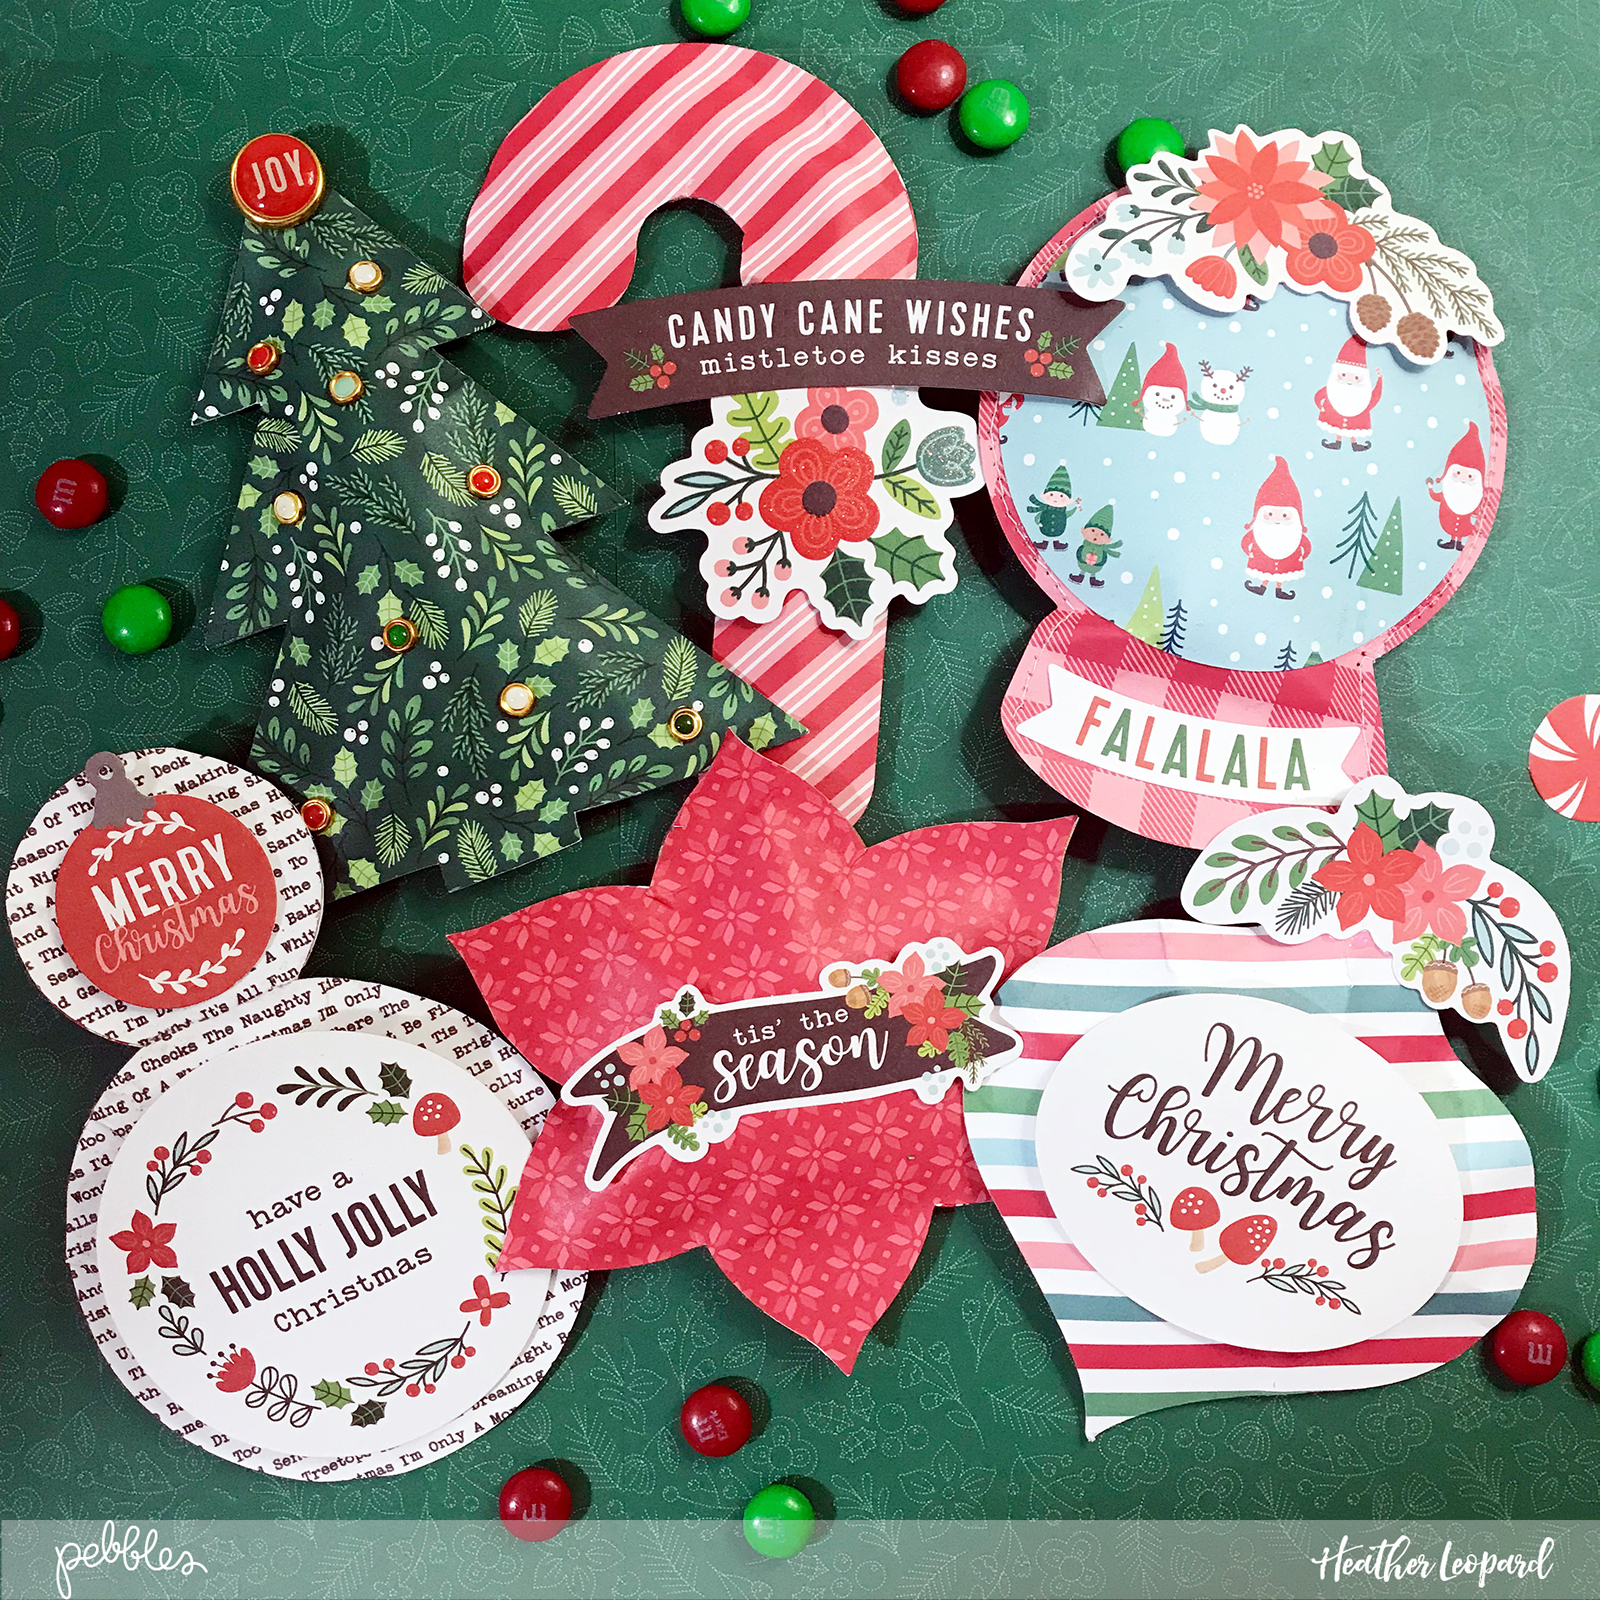 Christmas Treats by @HeatherLeopard using the @PebblesInc #cozyandbright collection #madewithpebbles #Christmas #gifts #Christmastreats